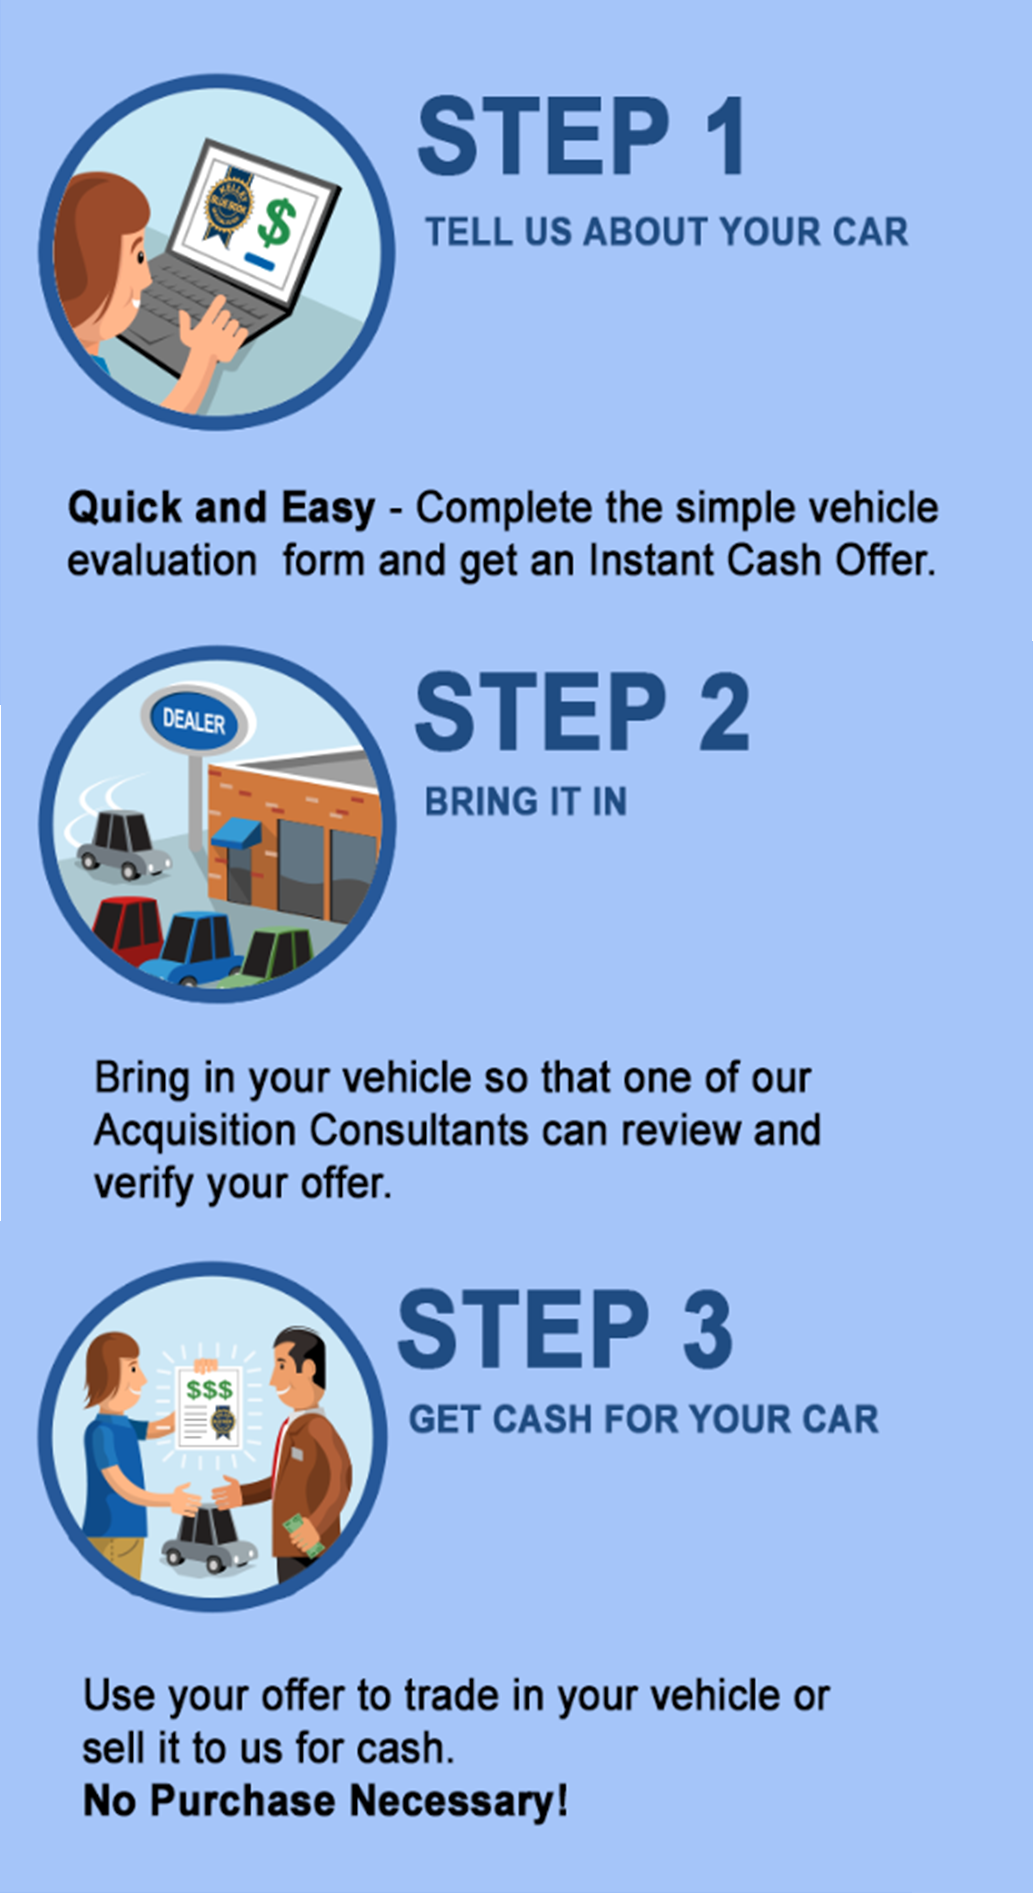 3 Quick and easy steps to turn your car into cash!